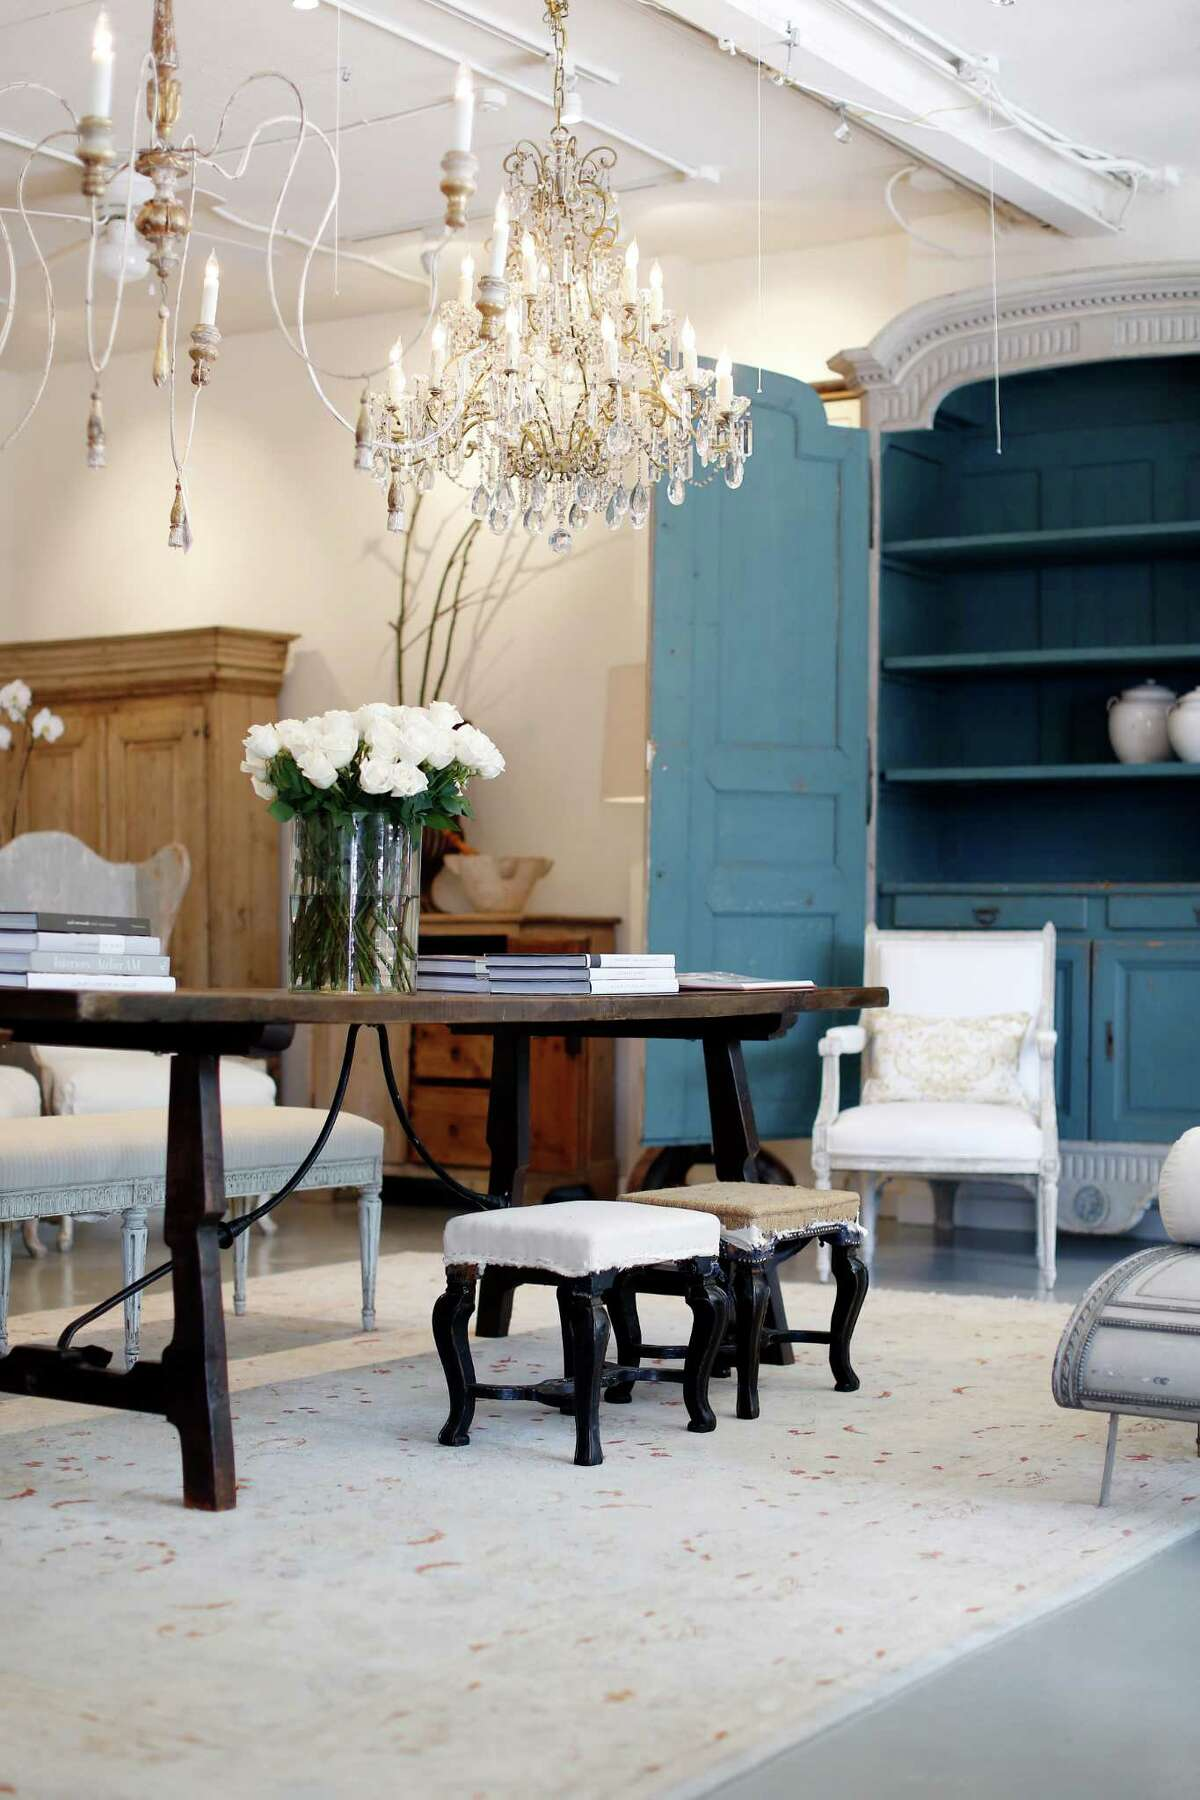 The newly revamped J. Nash Antiques features 18th- and 19th-century French and Swedish furniture, the latter mostly from the Gustavian period.